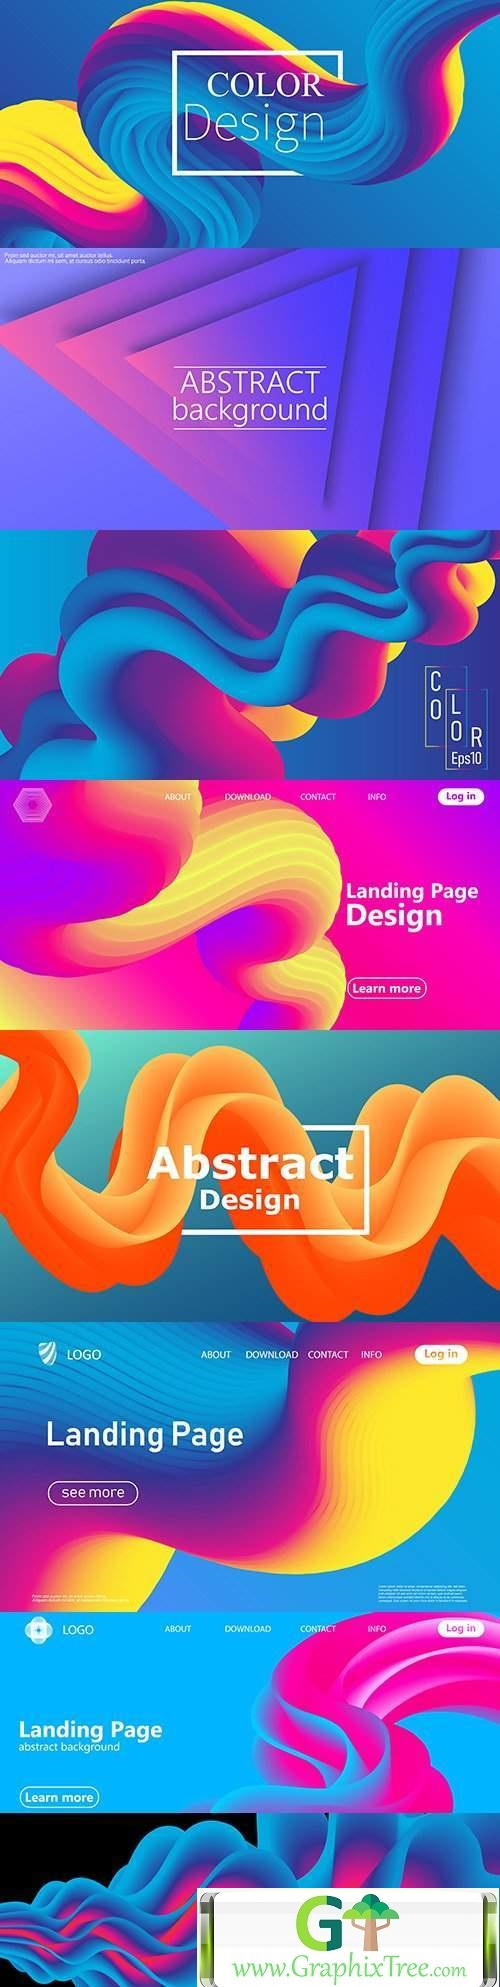 Liquid form abstract flow fashion background